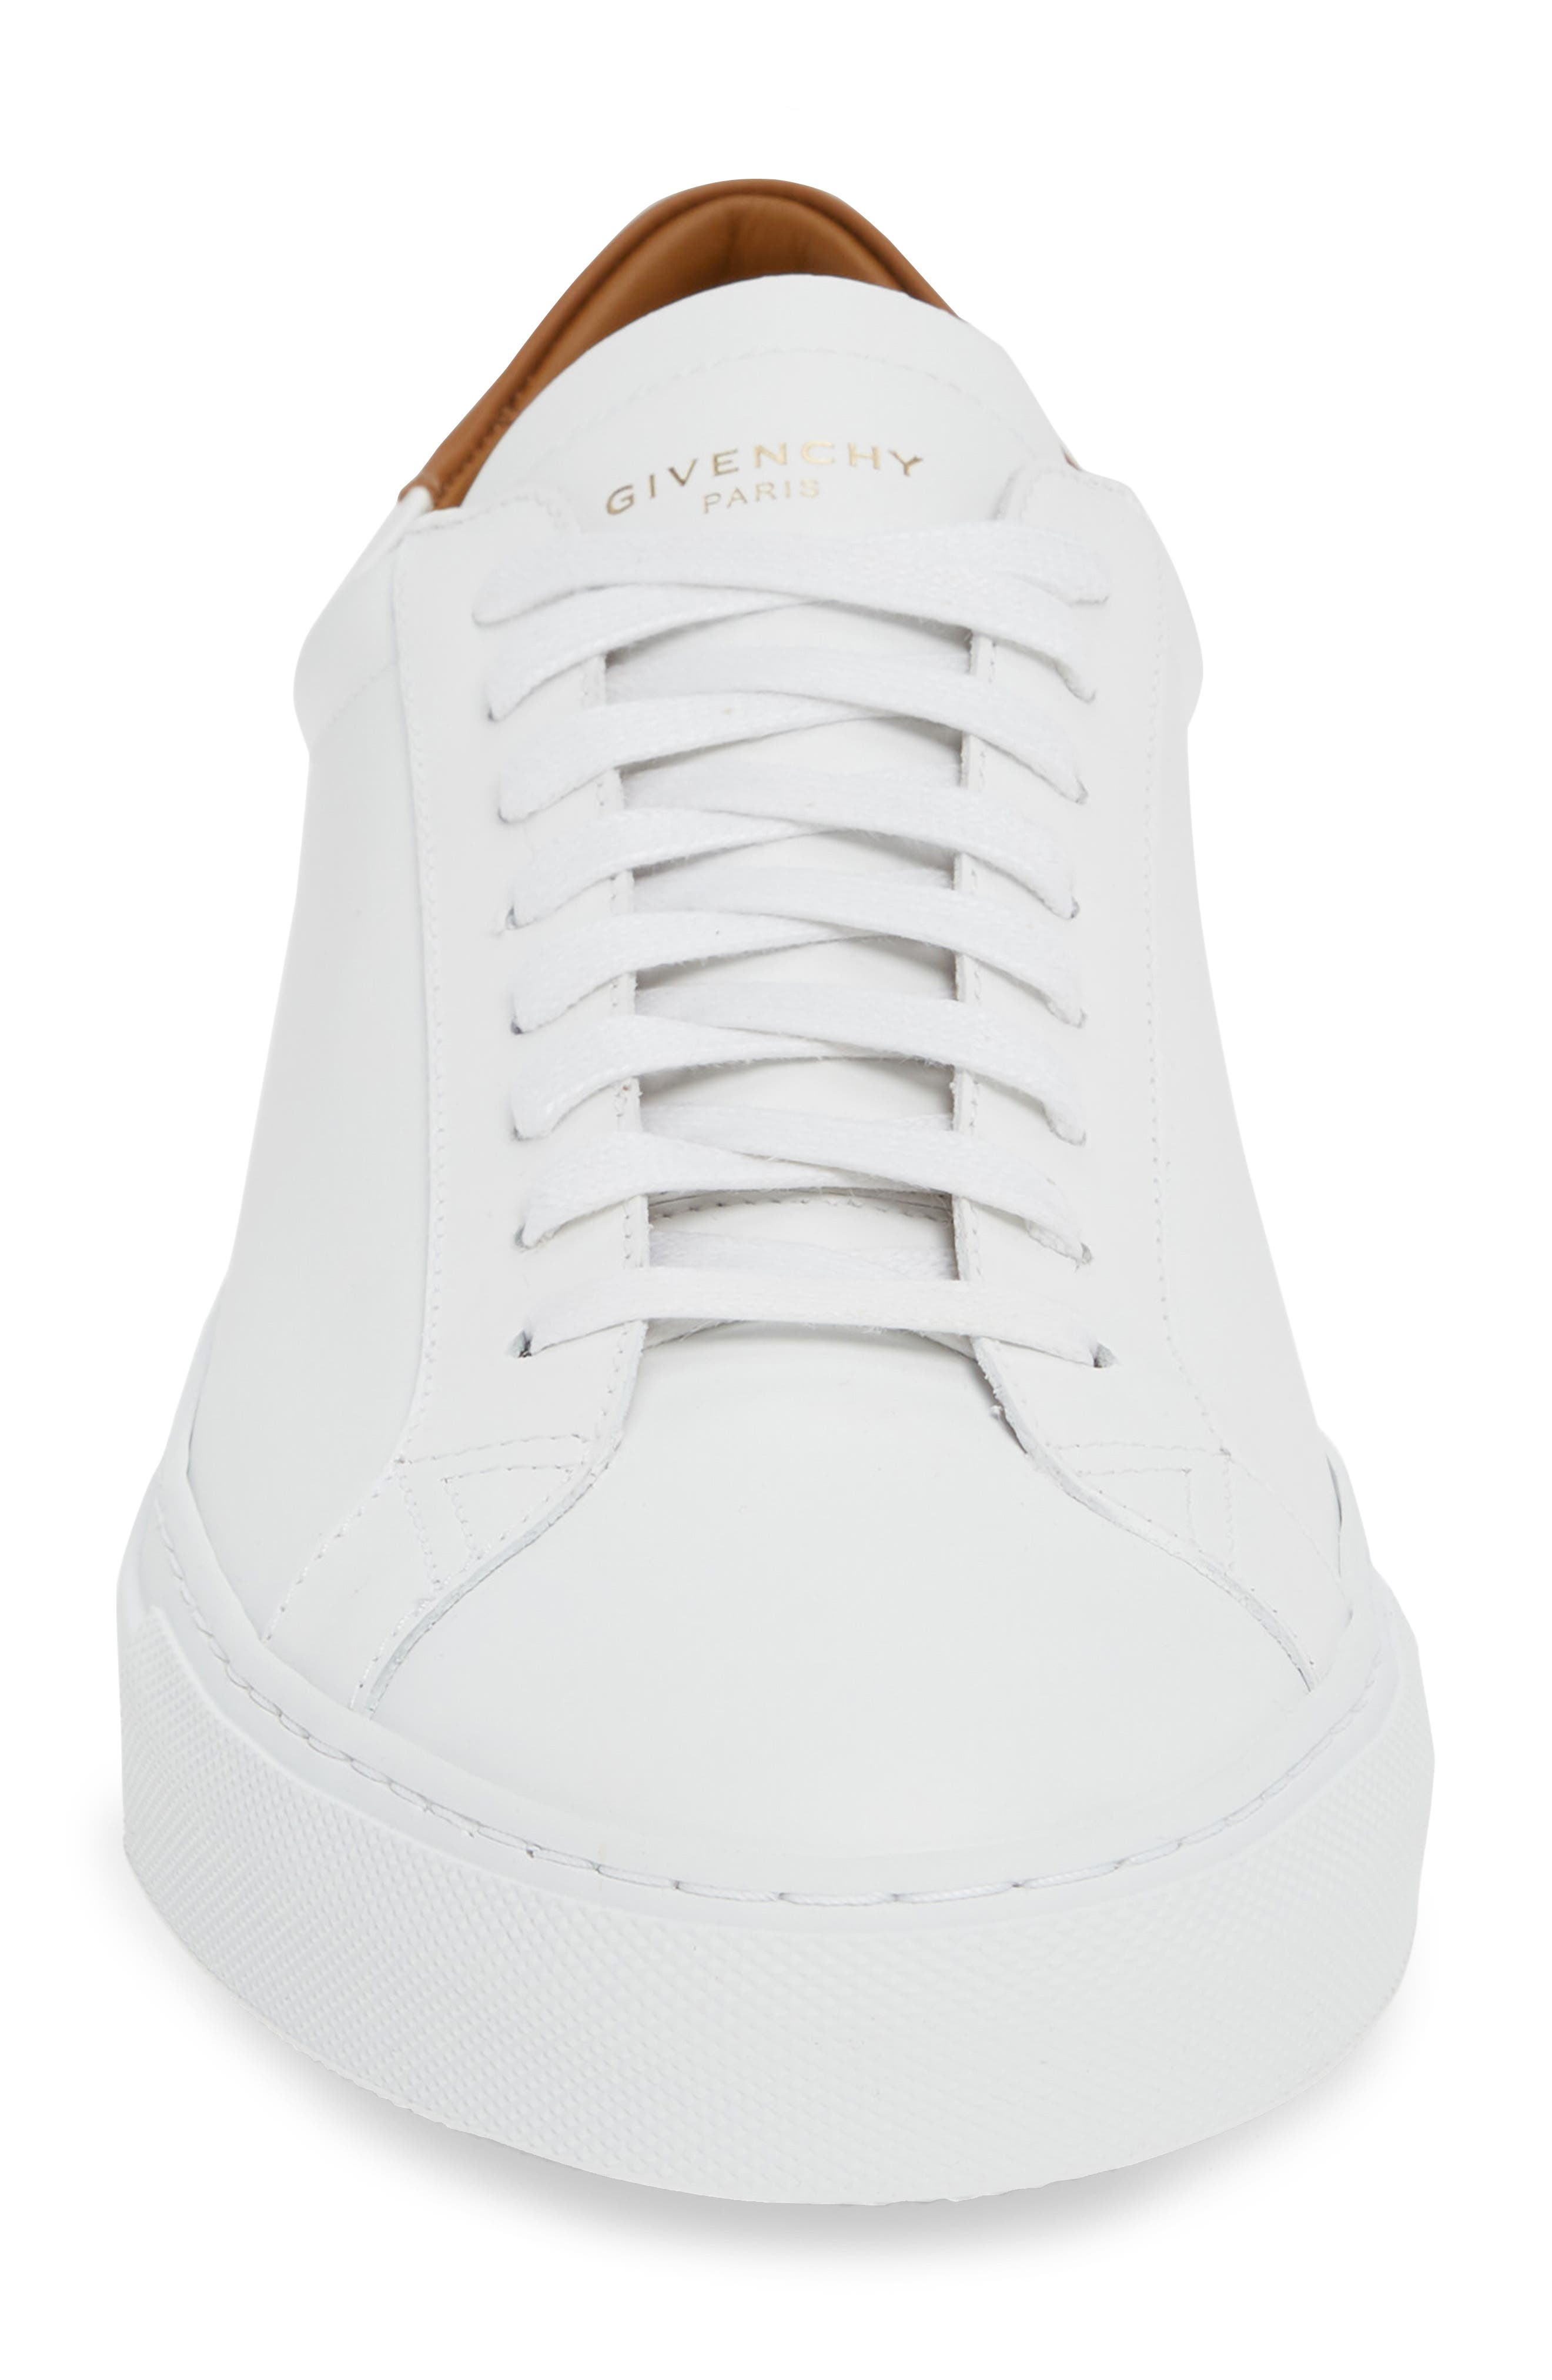 GIVENCHY,                             Urban Knots Low Sneaker,                             Alternate thumbnail 4, color,                             WHITE/ BEIGE